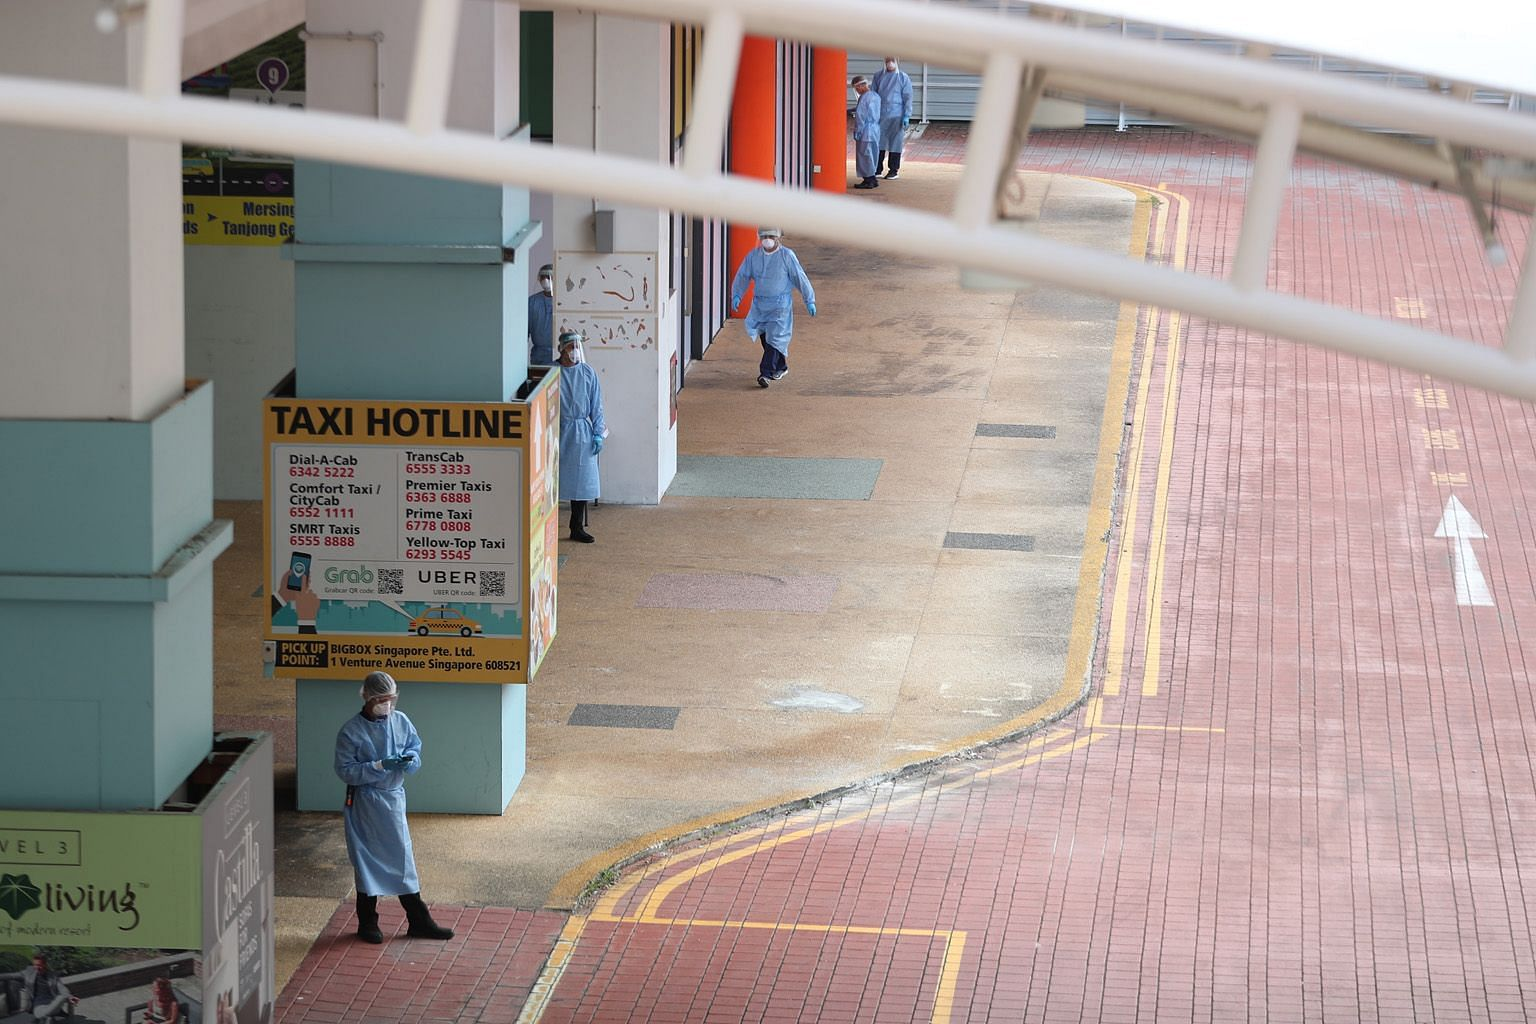 Big Box shopping mall in Jurong East, one of the most recent additions to the Government's list of community facilities, is among those still operating, said a Ministry of Health spokesman.